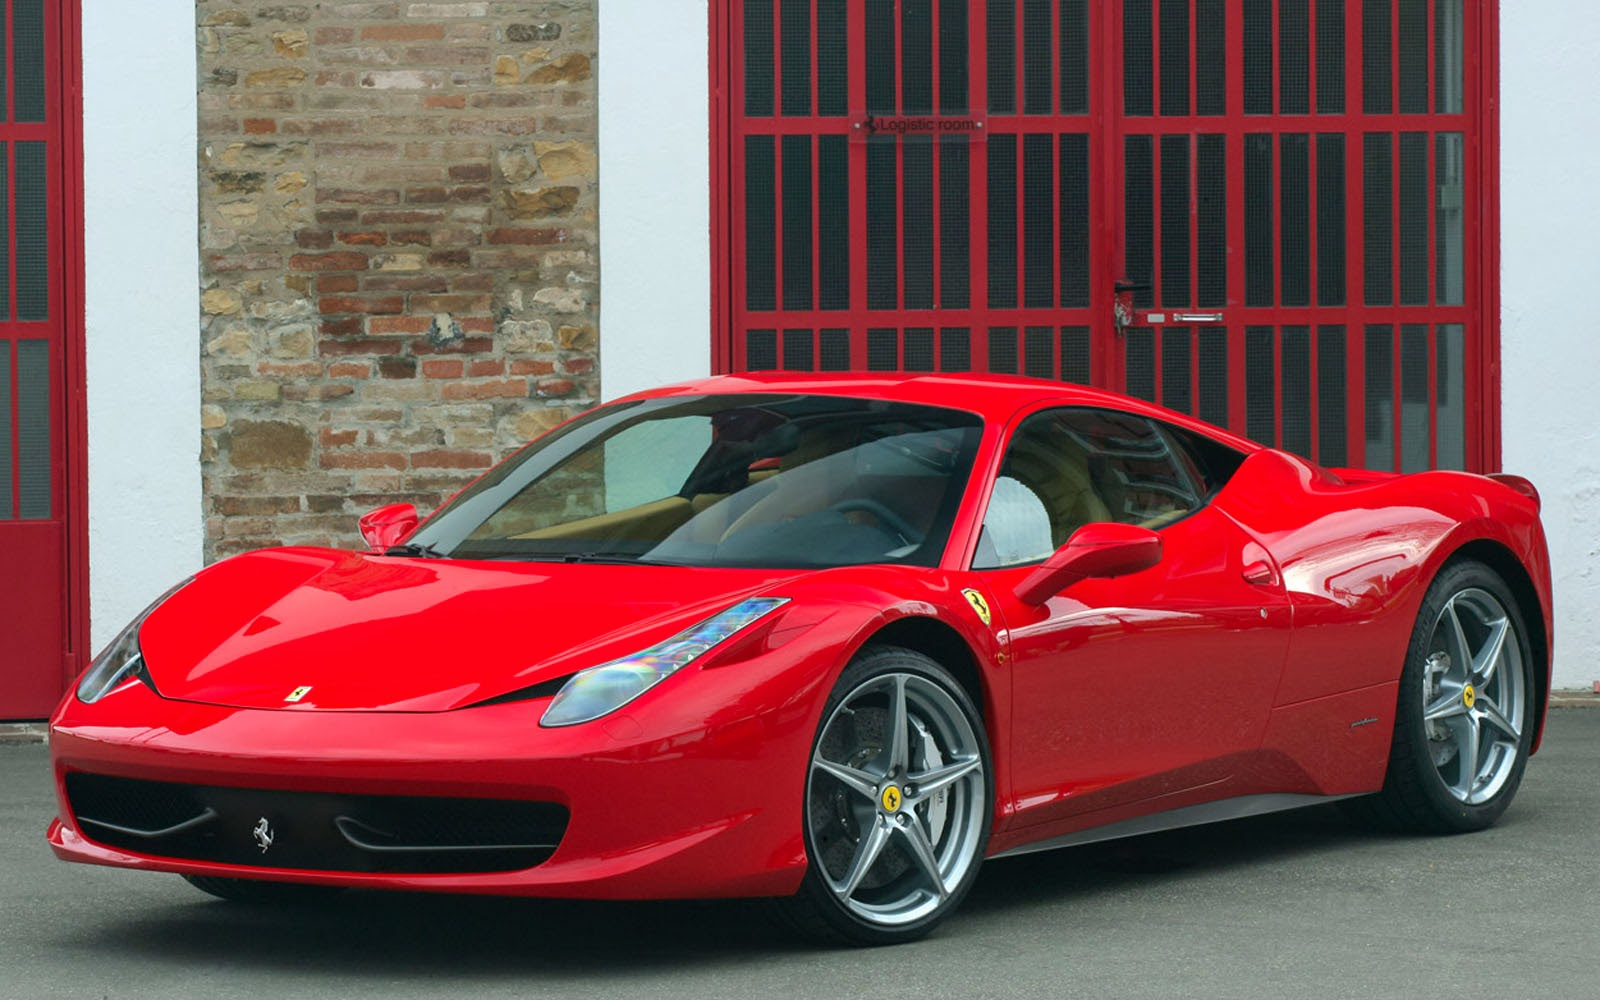 wallpapers: Ferrari 458 Italia Car Wallpapers